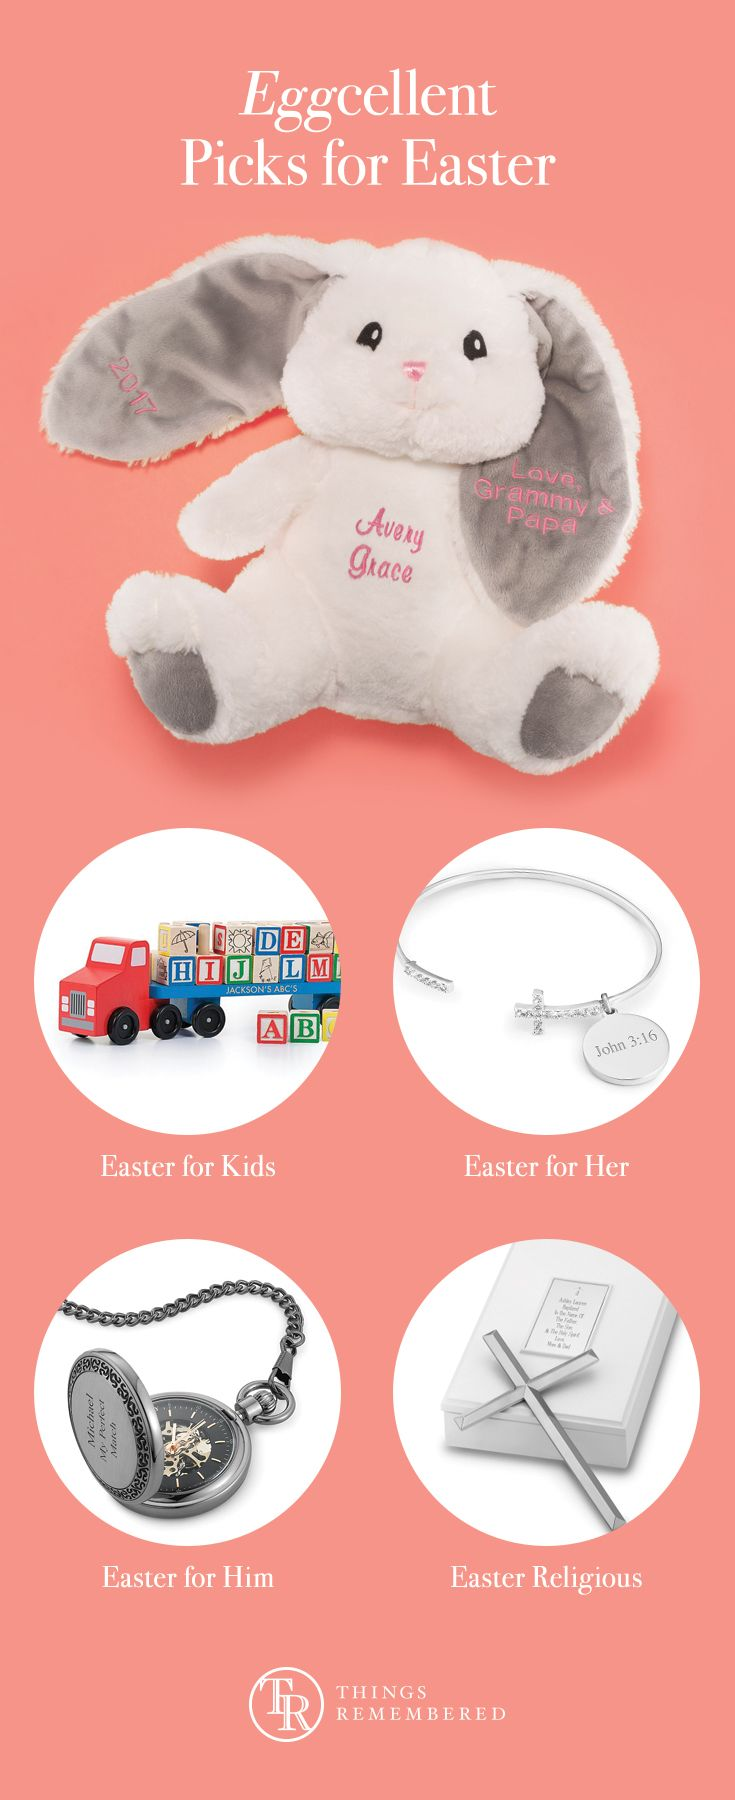 Personalized gifts are great to fill easter baskets if all kinds personalized gifts are great to fill easter baskets if all kinds check out these easter negle Image collections